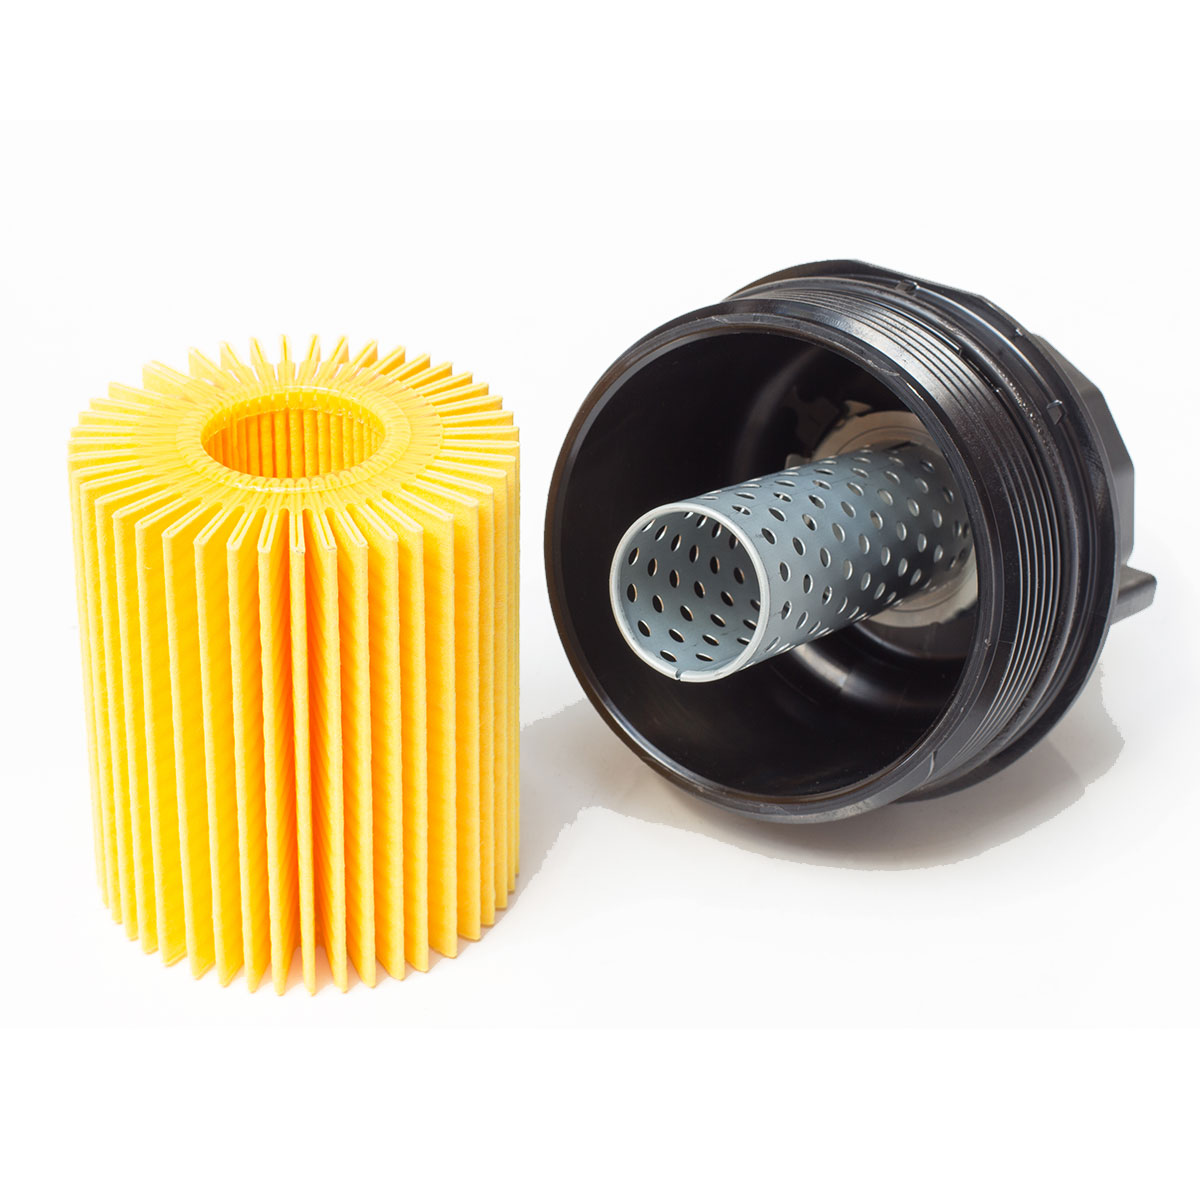 hight resolution of chevy 6 5 turbo diesel fuel filter housing line